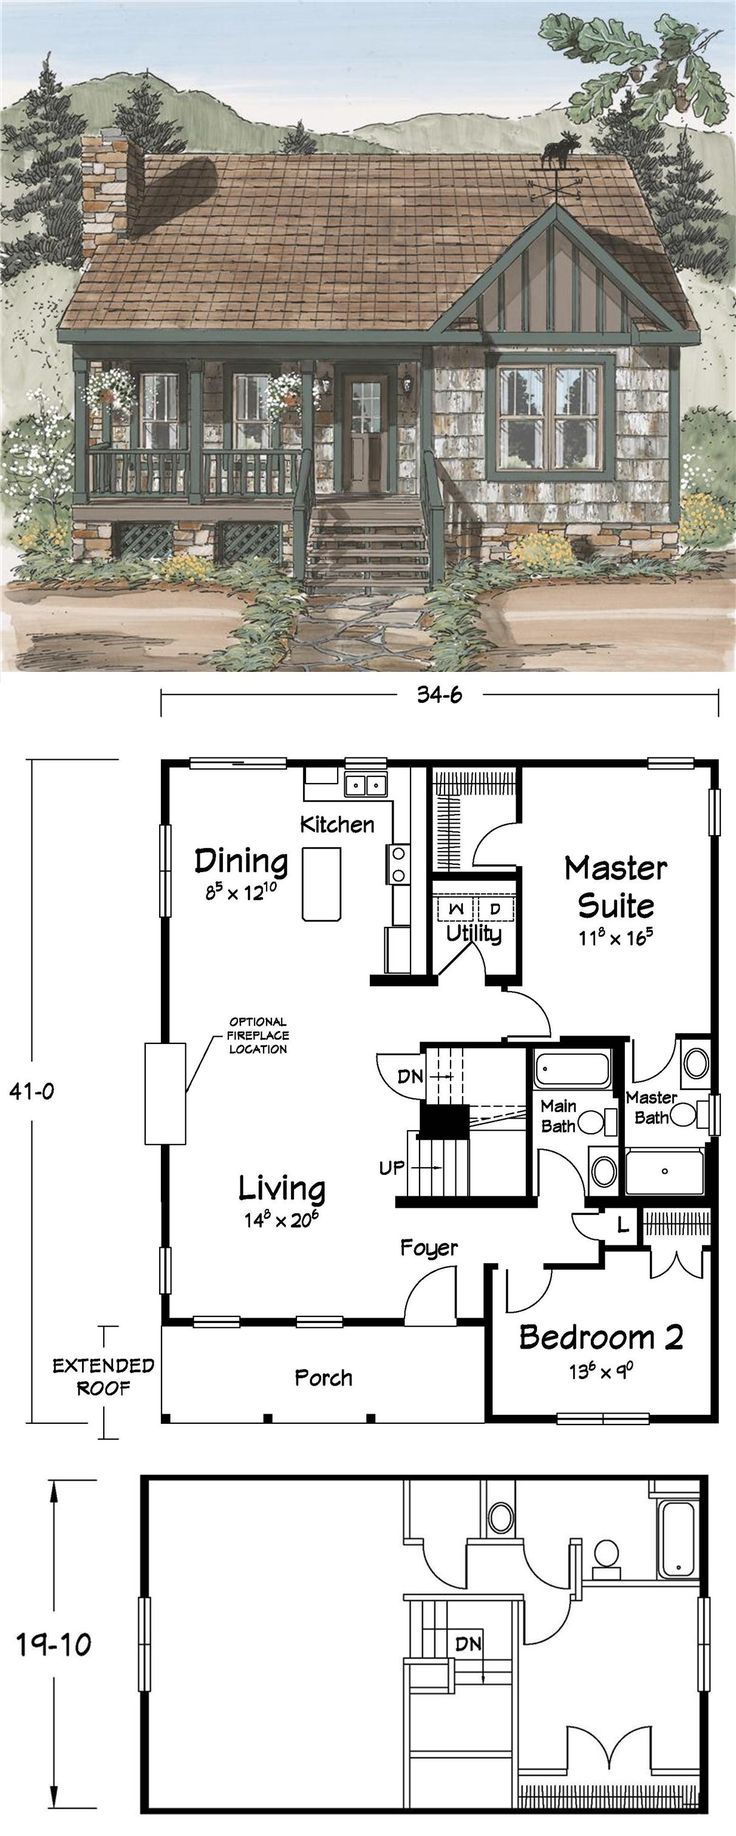 Cute Floor Plans Tiny Homes Pinterest Cabin Small: cabin floor plans